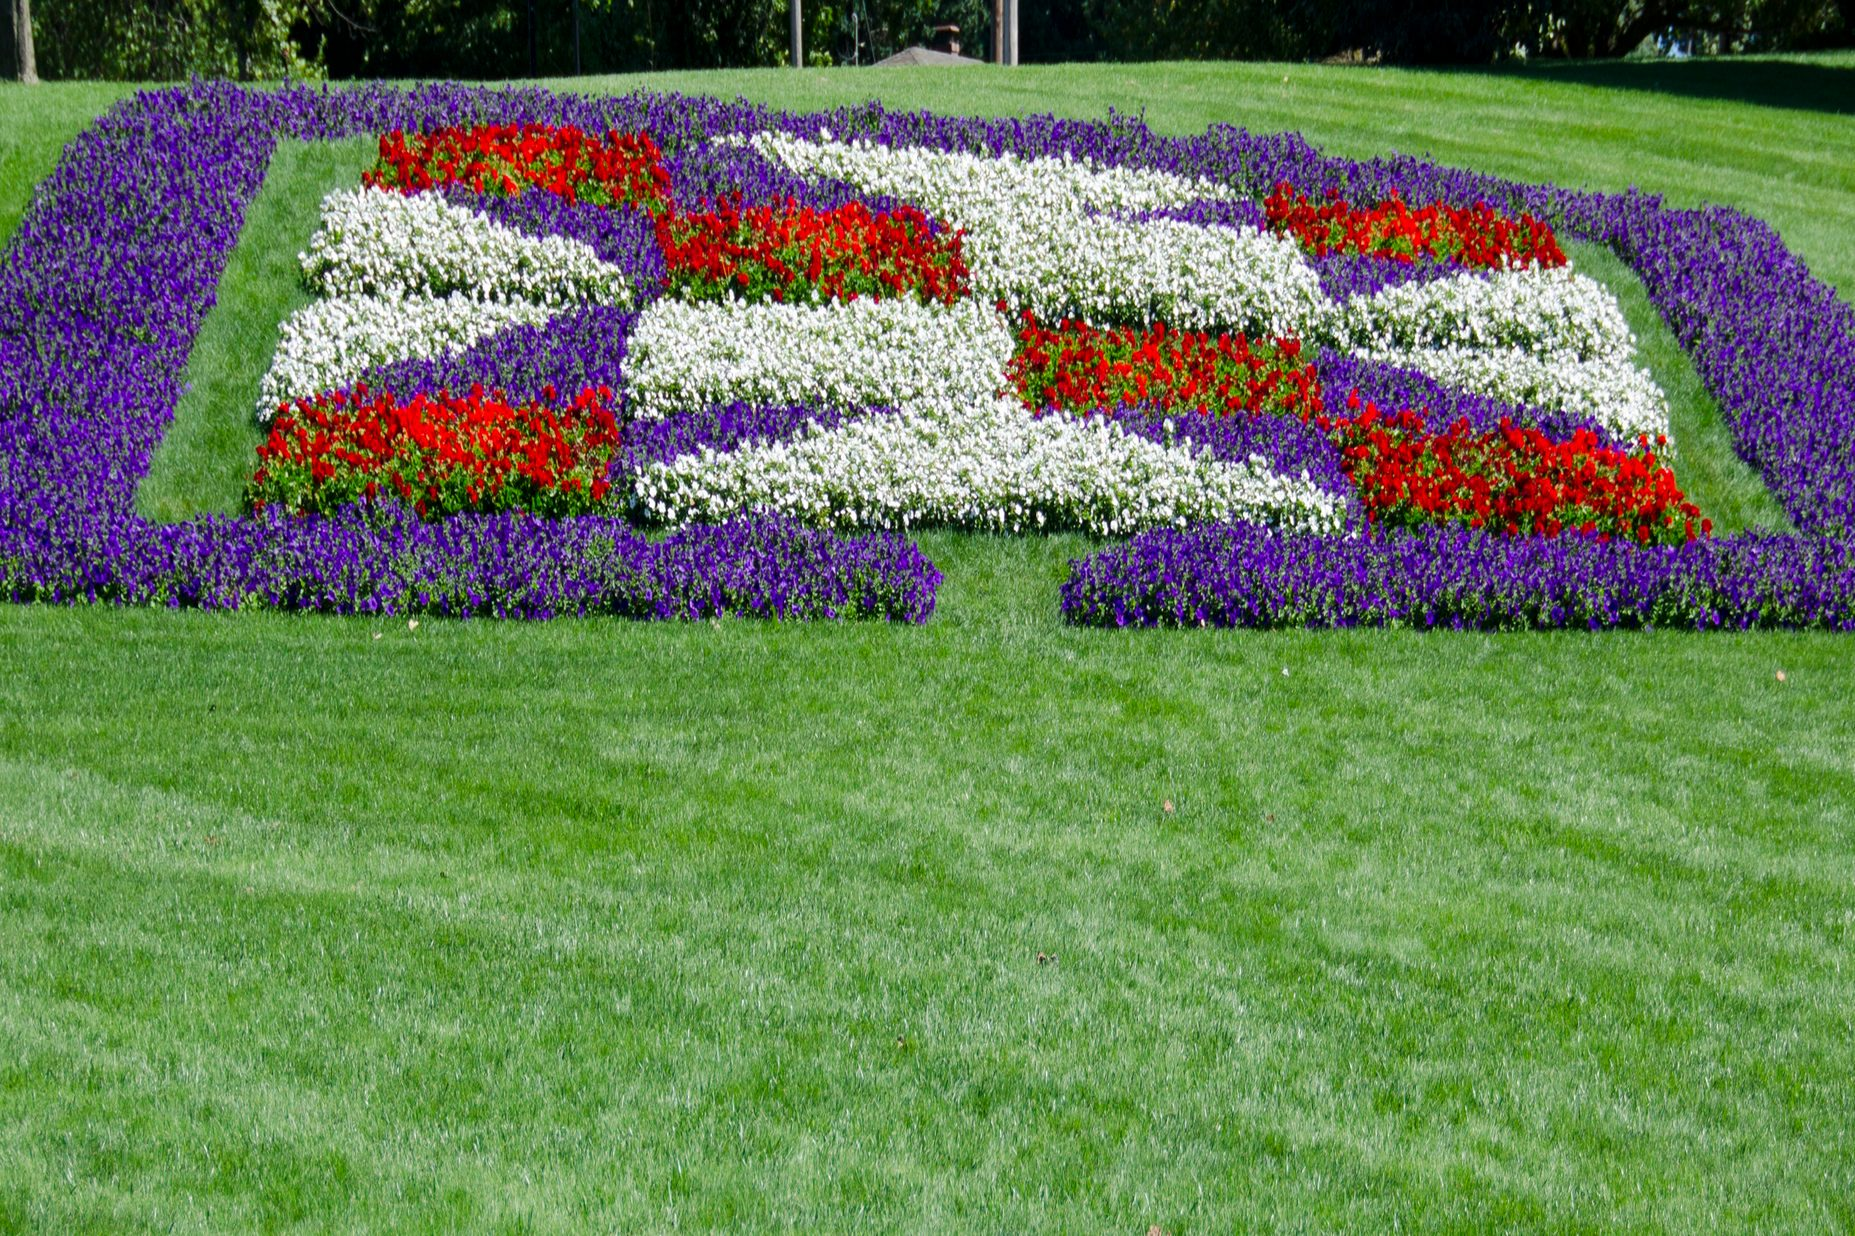 Flowerbed Designed Like a Quilt